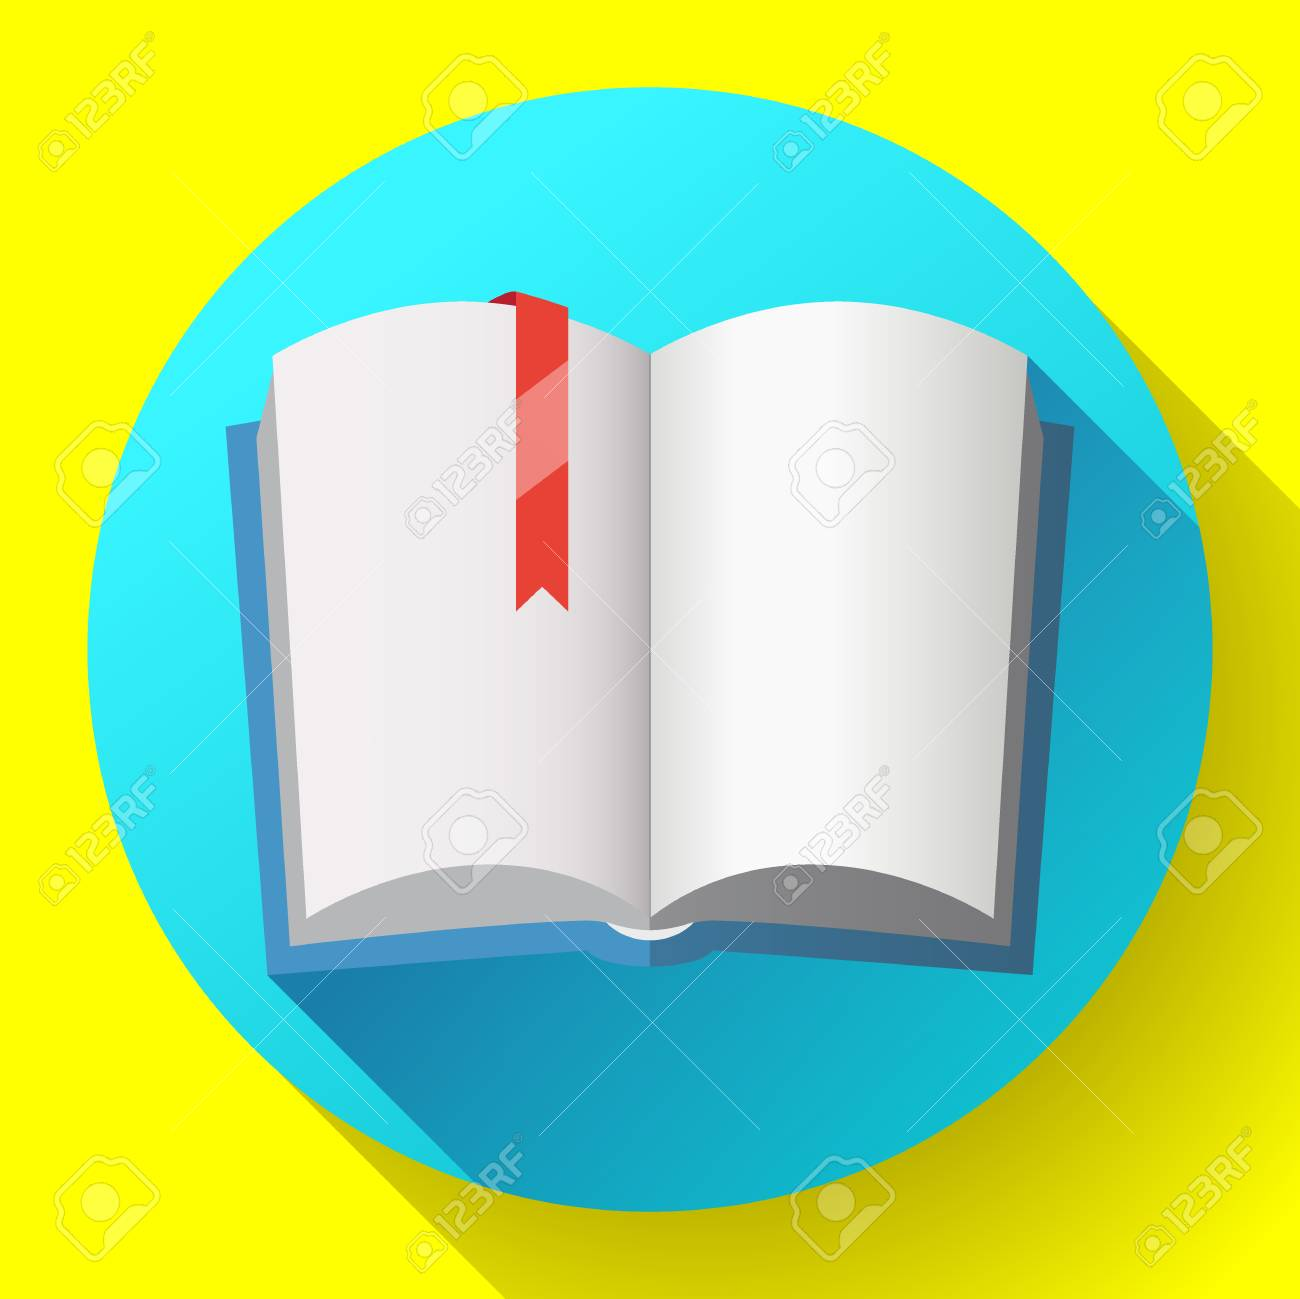 icon of open textbook with red bookmark. blank book with a blue